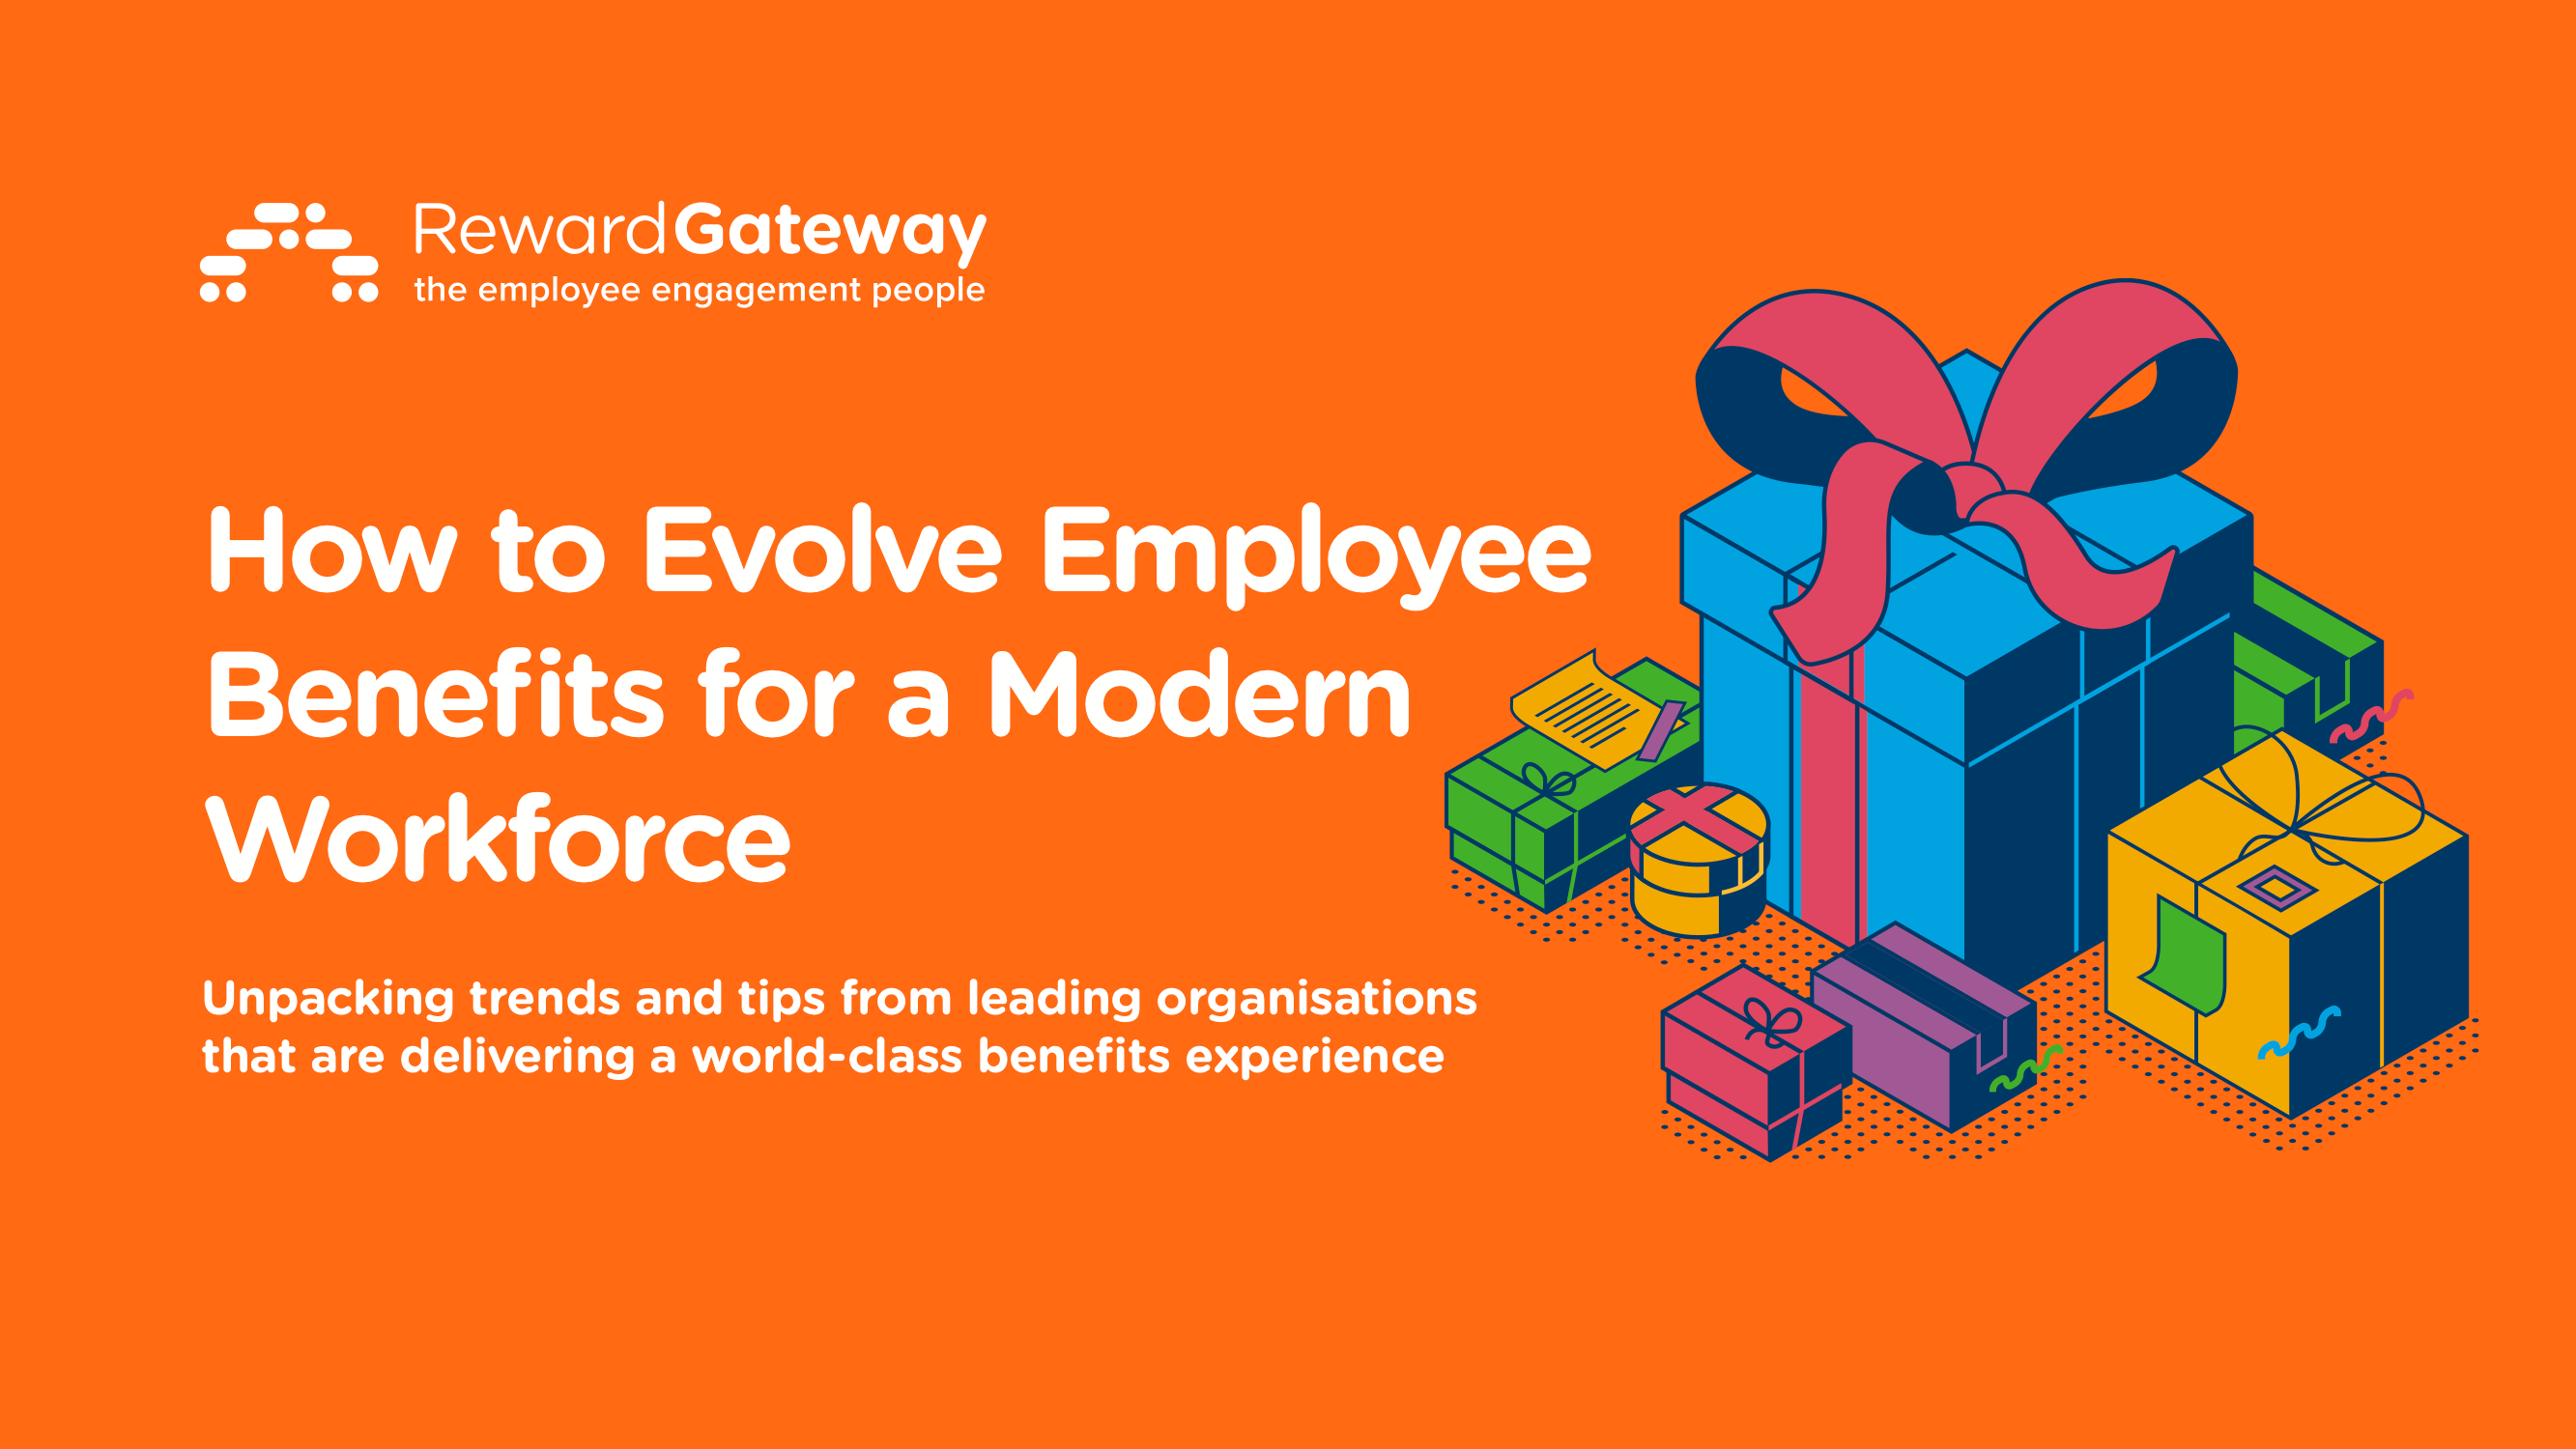 ebook-how-to-evolve-employee-benefits-for-a-modern-workforce-au